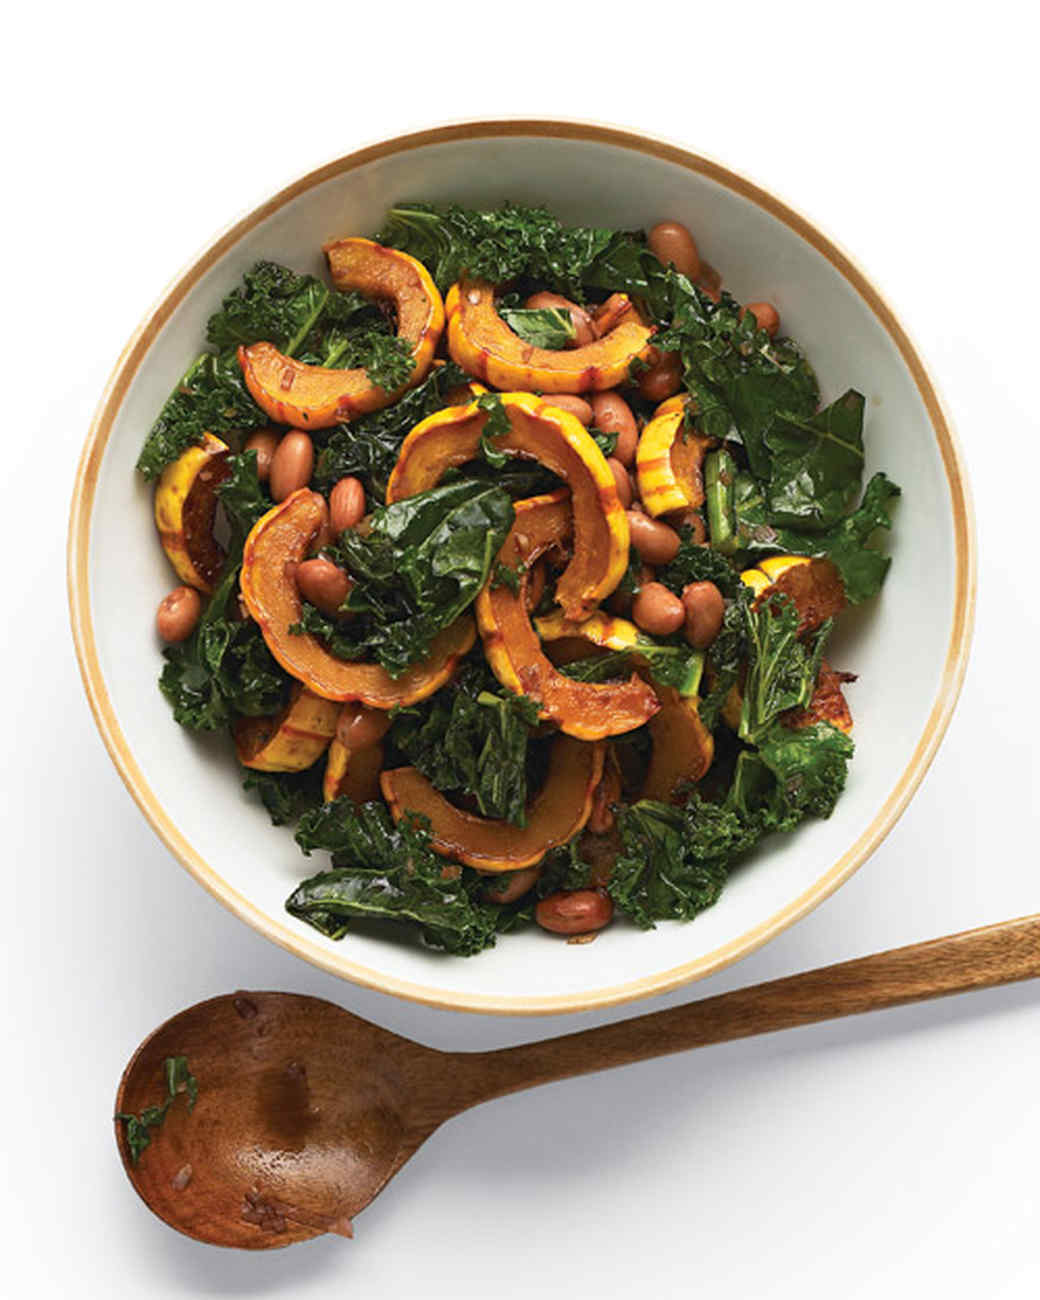 Delicata Squash Salad with Kale and Cranberry Beans